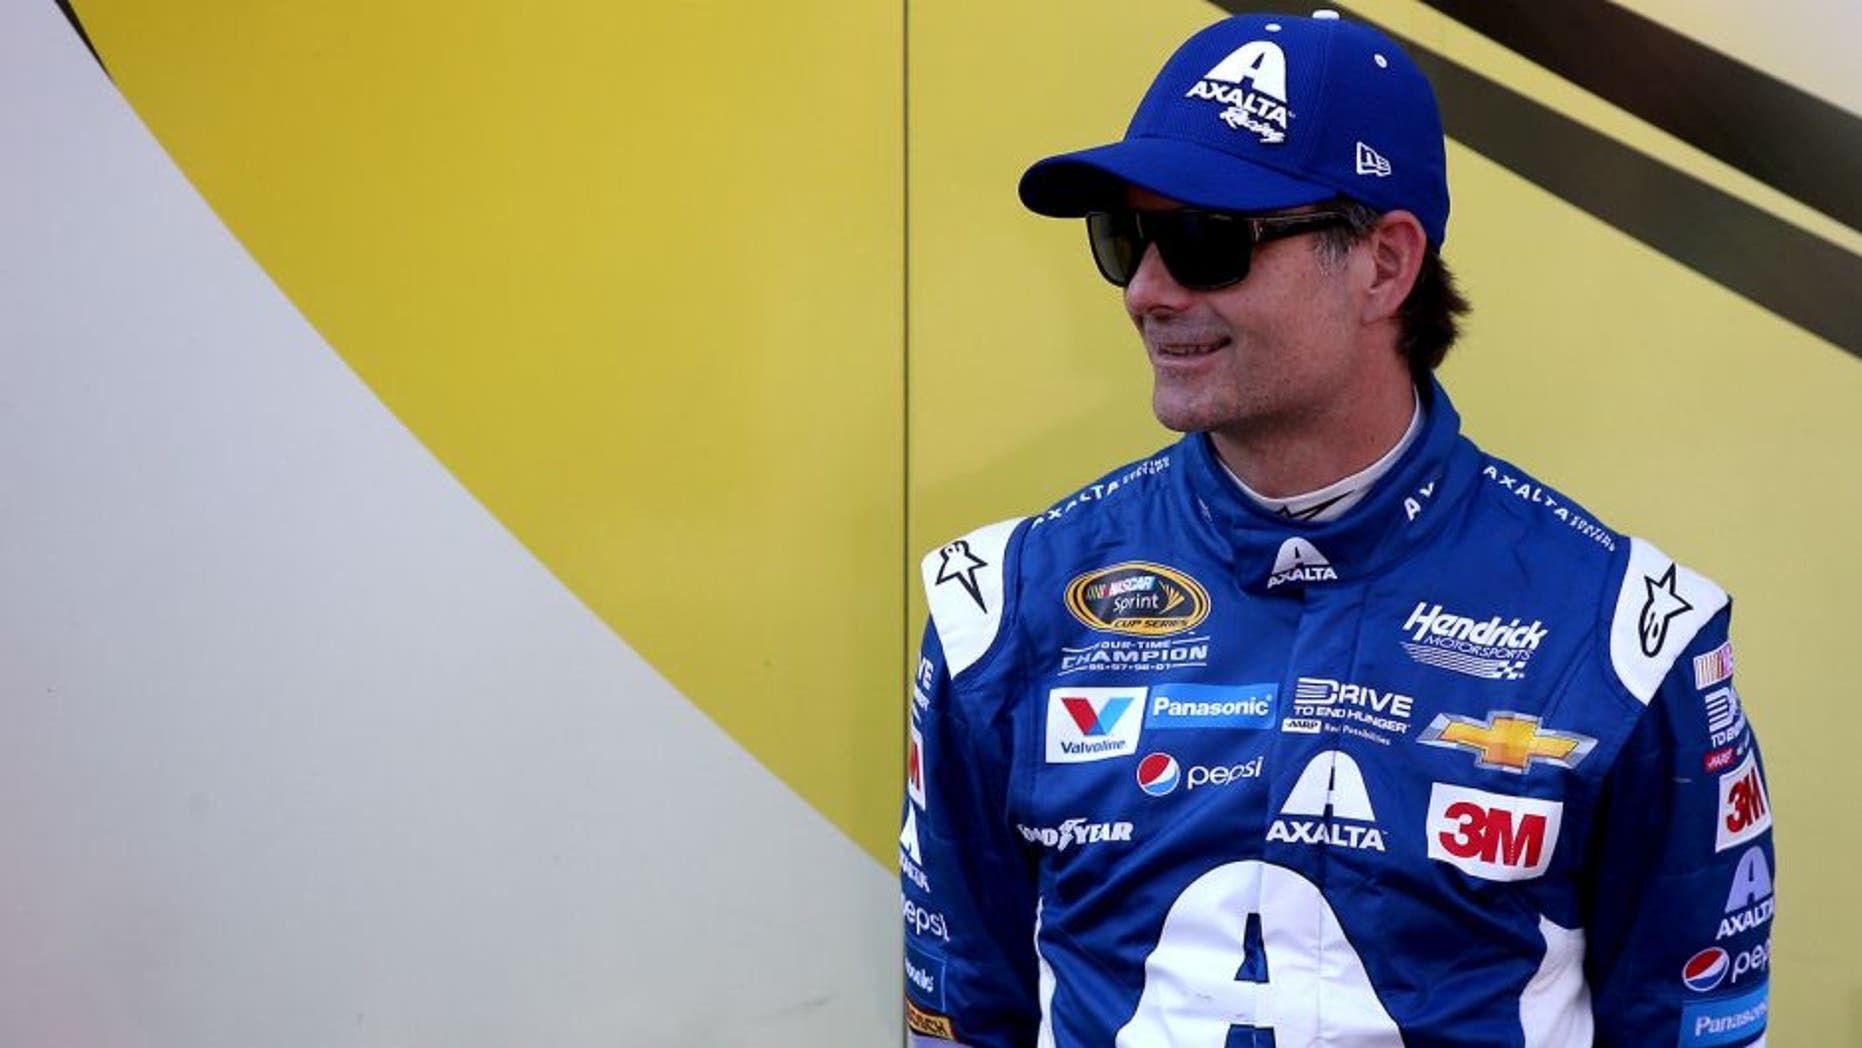 BRISTOL, TN - AUGUST 21: Jeff Gordon, driver of the #24 Axalta Chevrolet, stands in the garage area during qualifying for the NASCAR Sprint Cup Series Irwin Tools Night Race at Bristol Motor Speedway on August 21, 2015 in Bristol, Tennessee. (Photo by Sean Gardner/Getty Images)